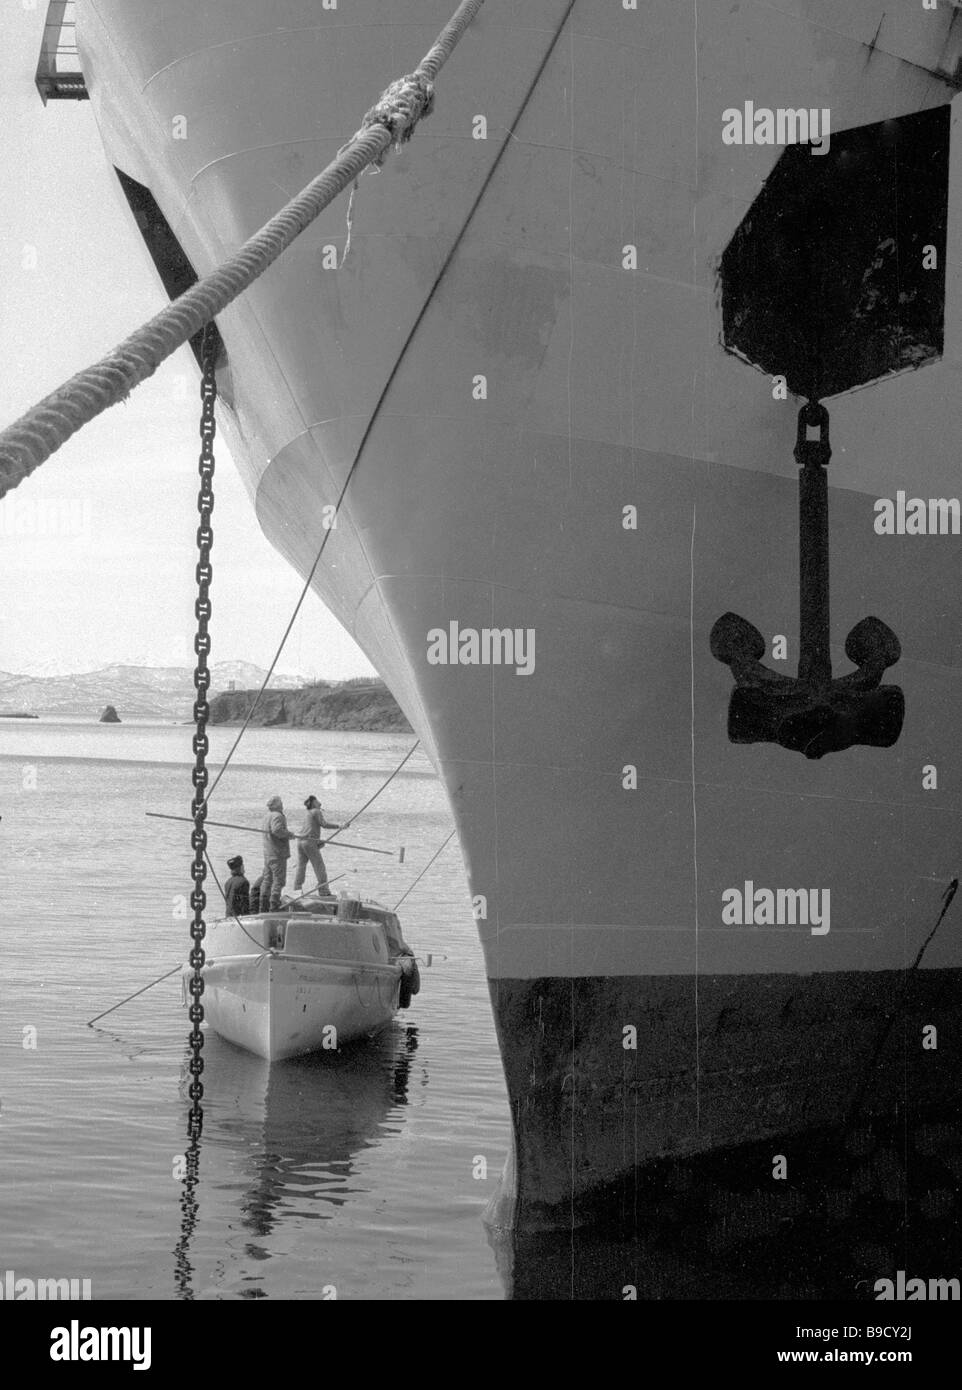 A fish trawler anchored at the pier - Stock Image